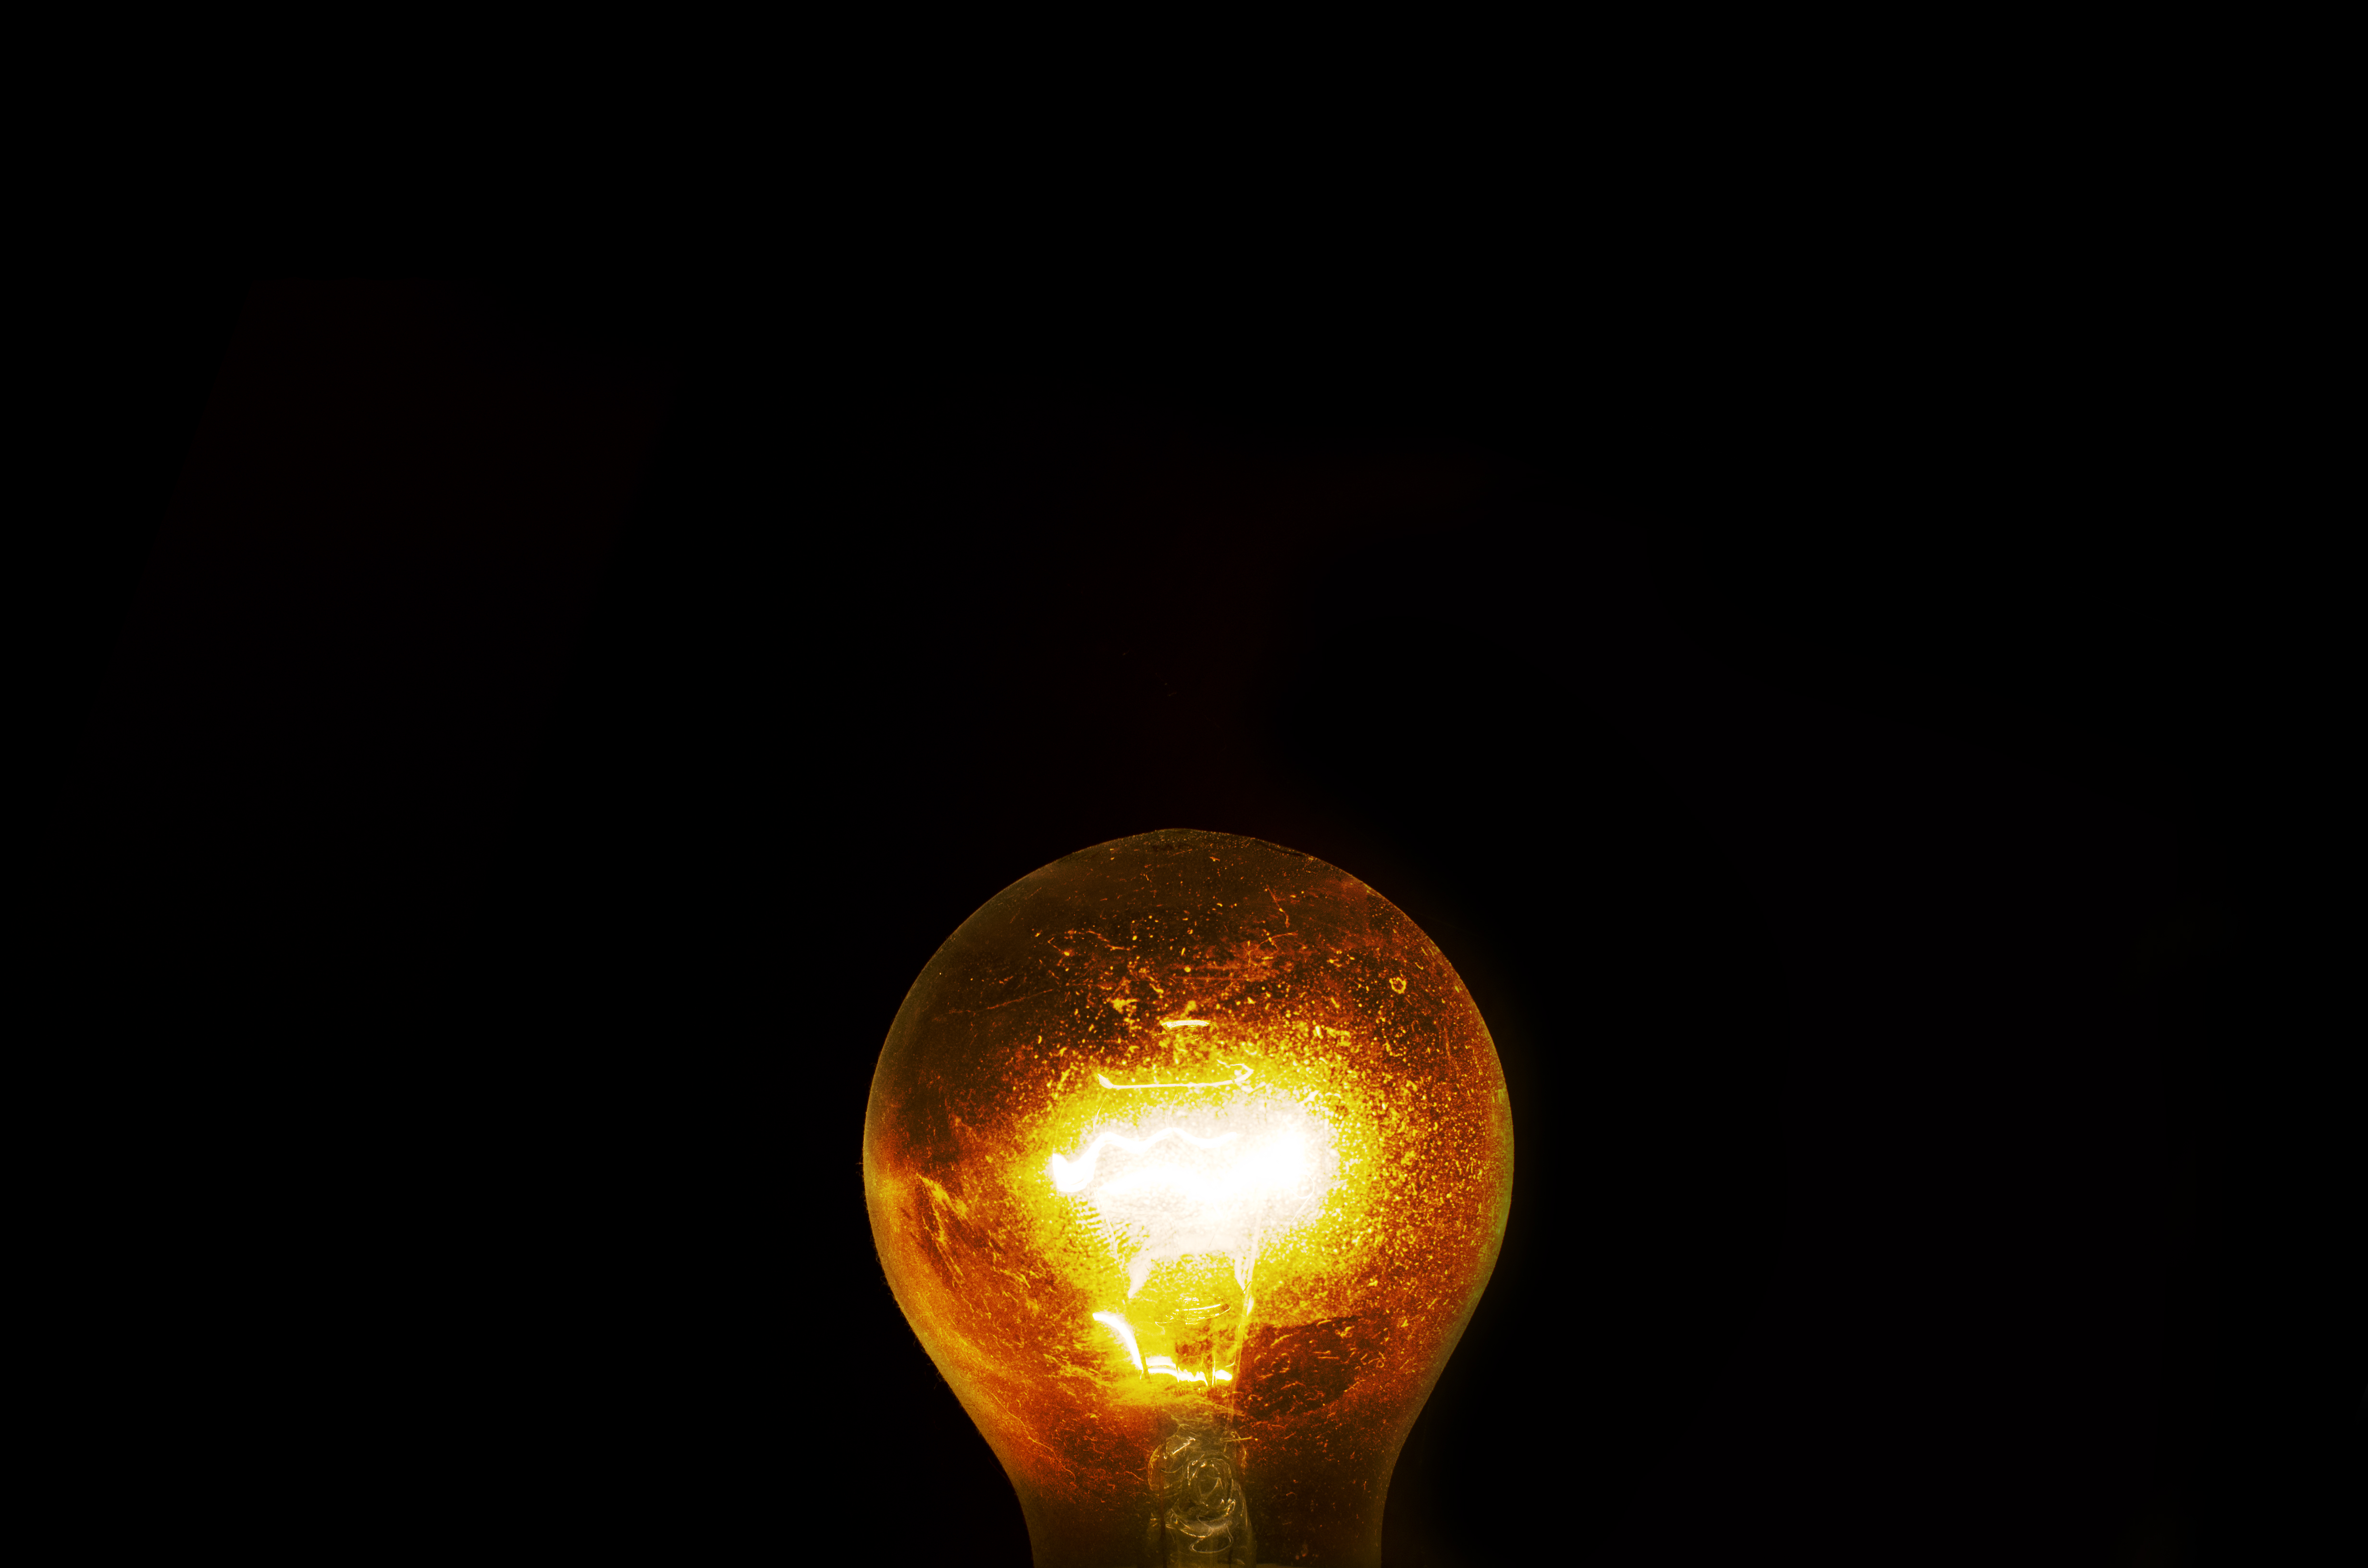 Samsung Mobile Wallpaper Hd Download Free Stock Photo Of Dark Light Light Bulb